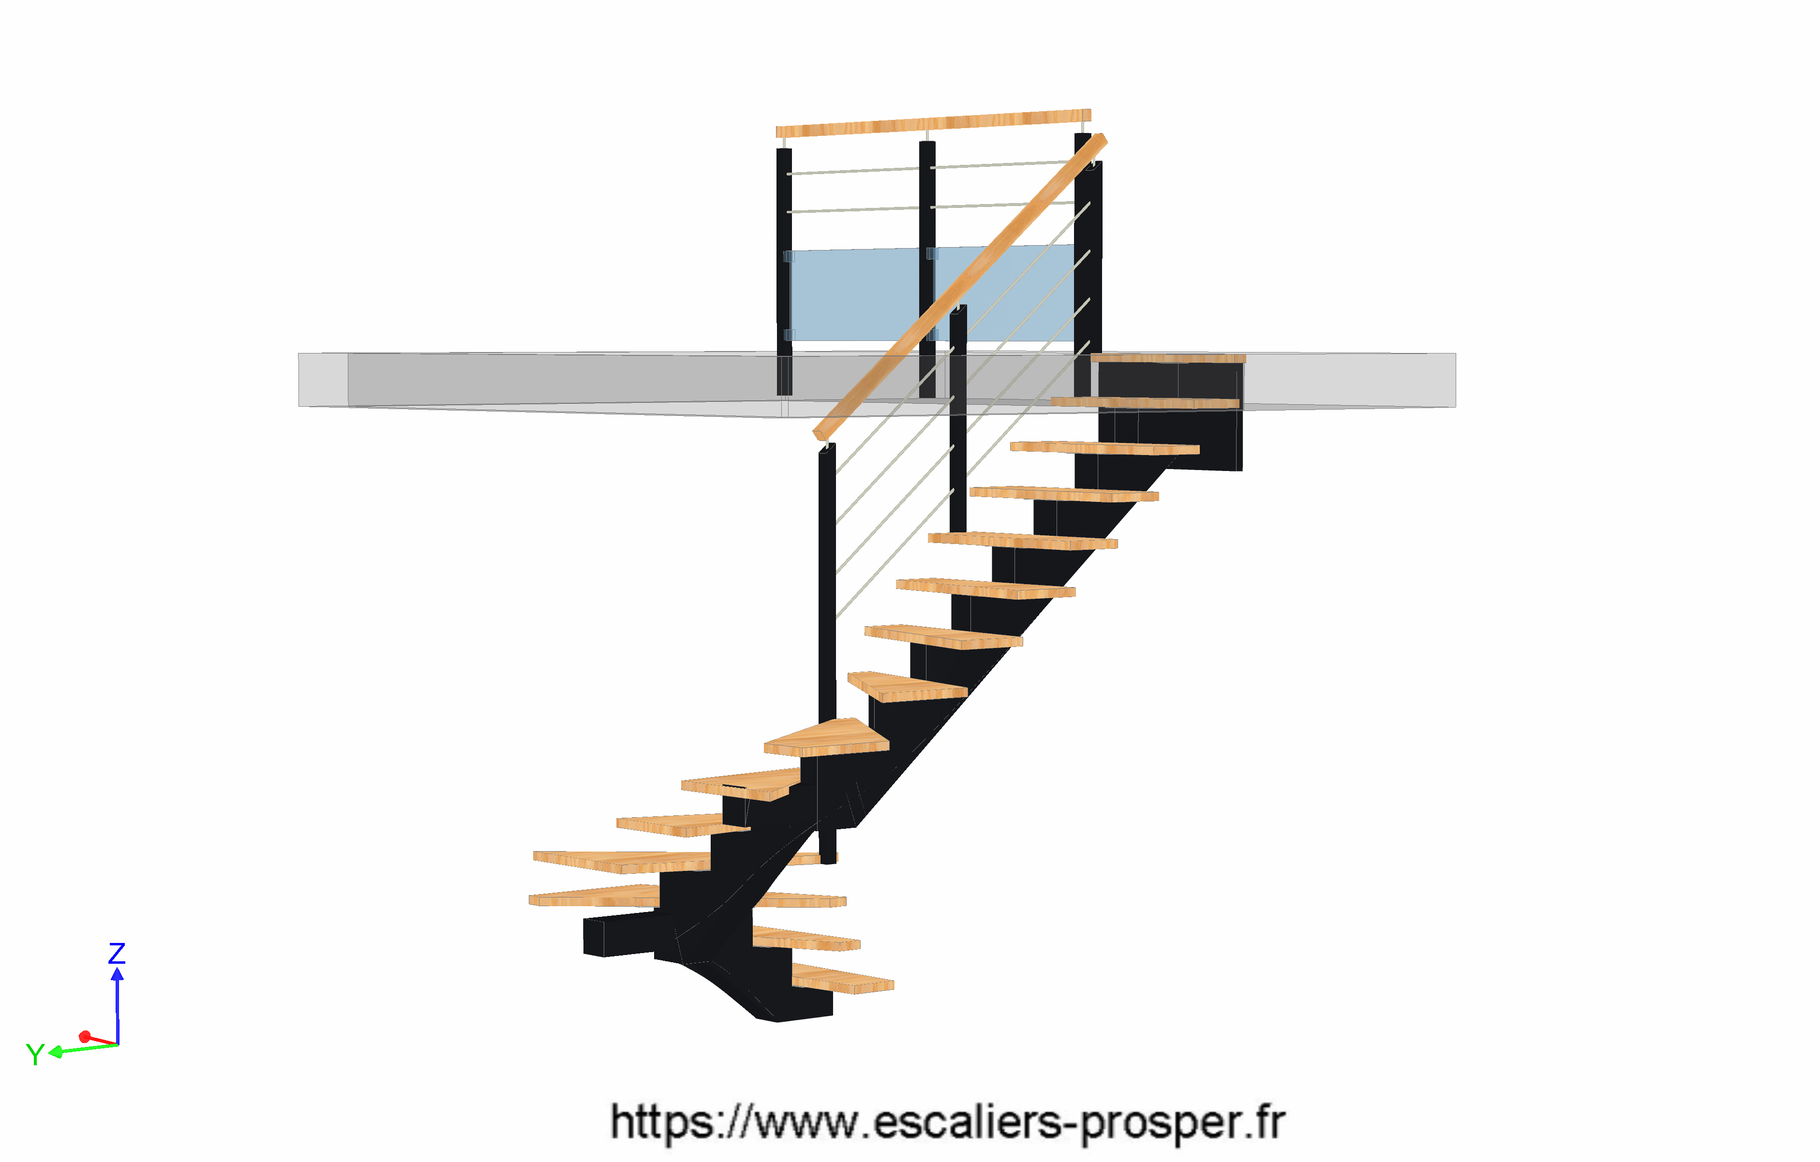 escalier en u limon central cr maill re e15 082 escaliers prosper sp cialiste de la. Black Bedroom Furniture Sets. Home Design Ideas